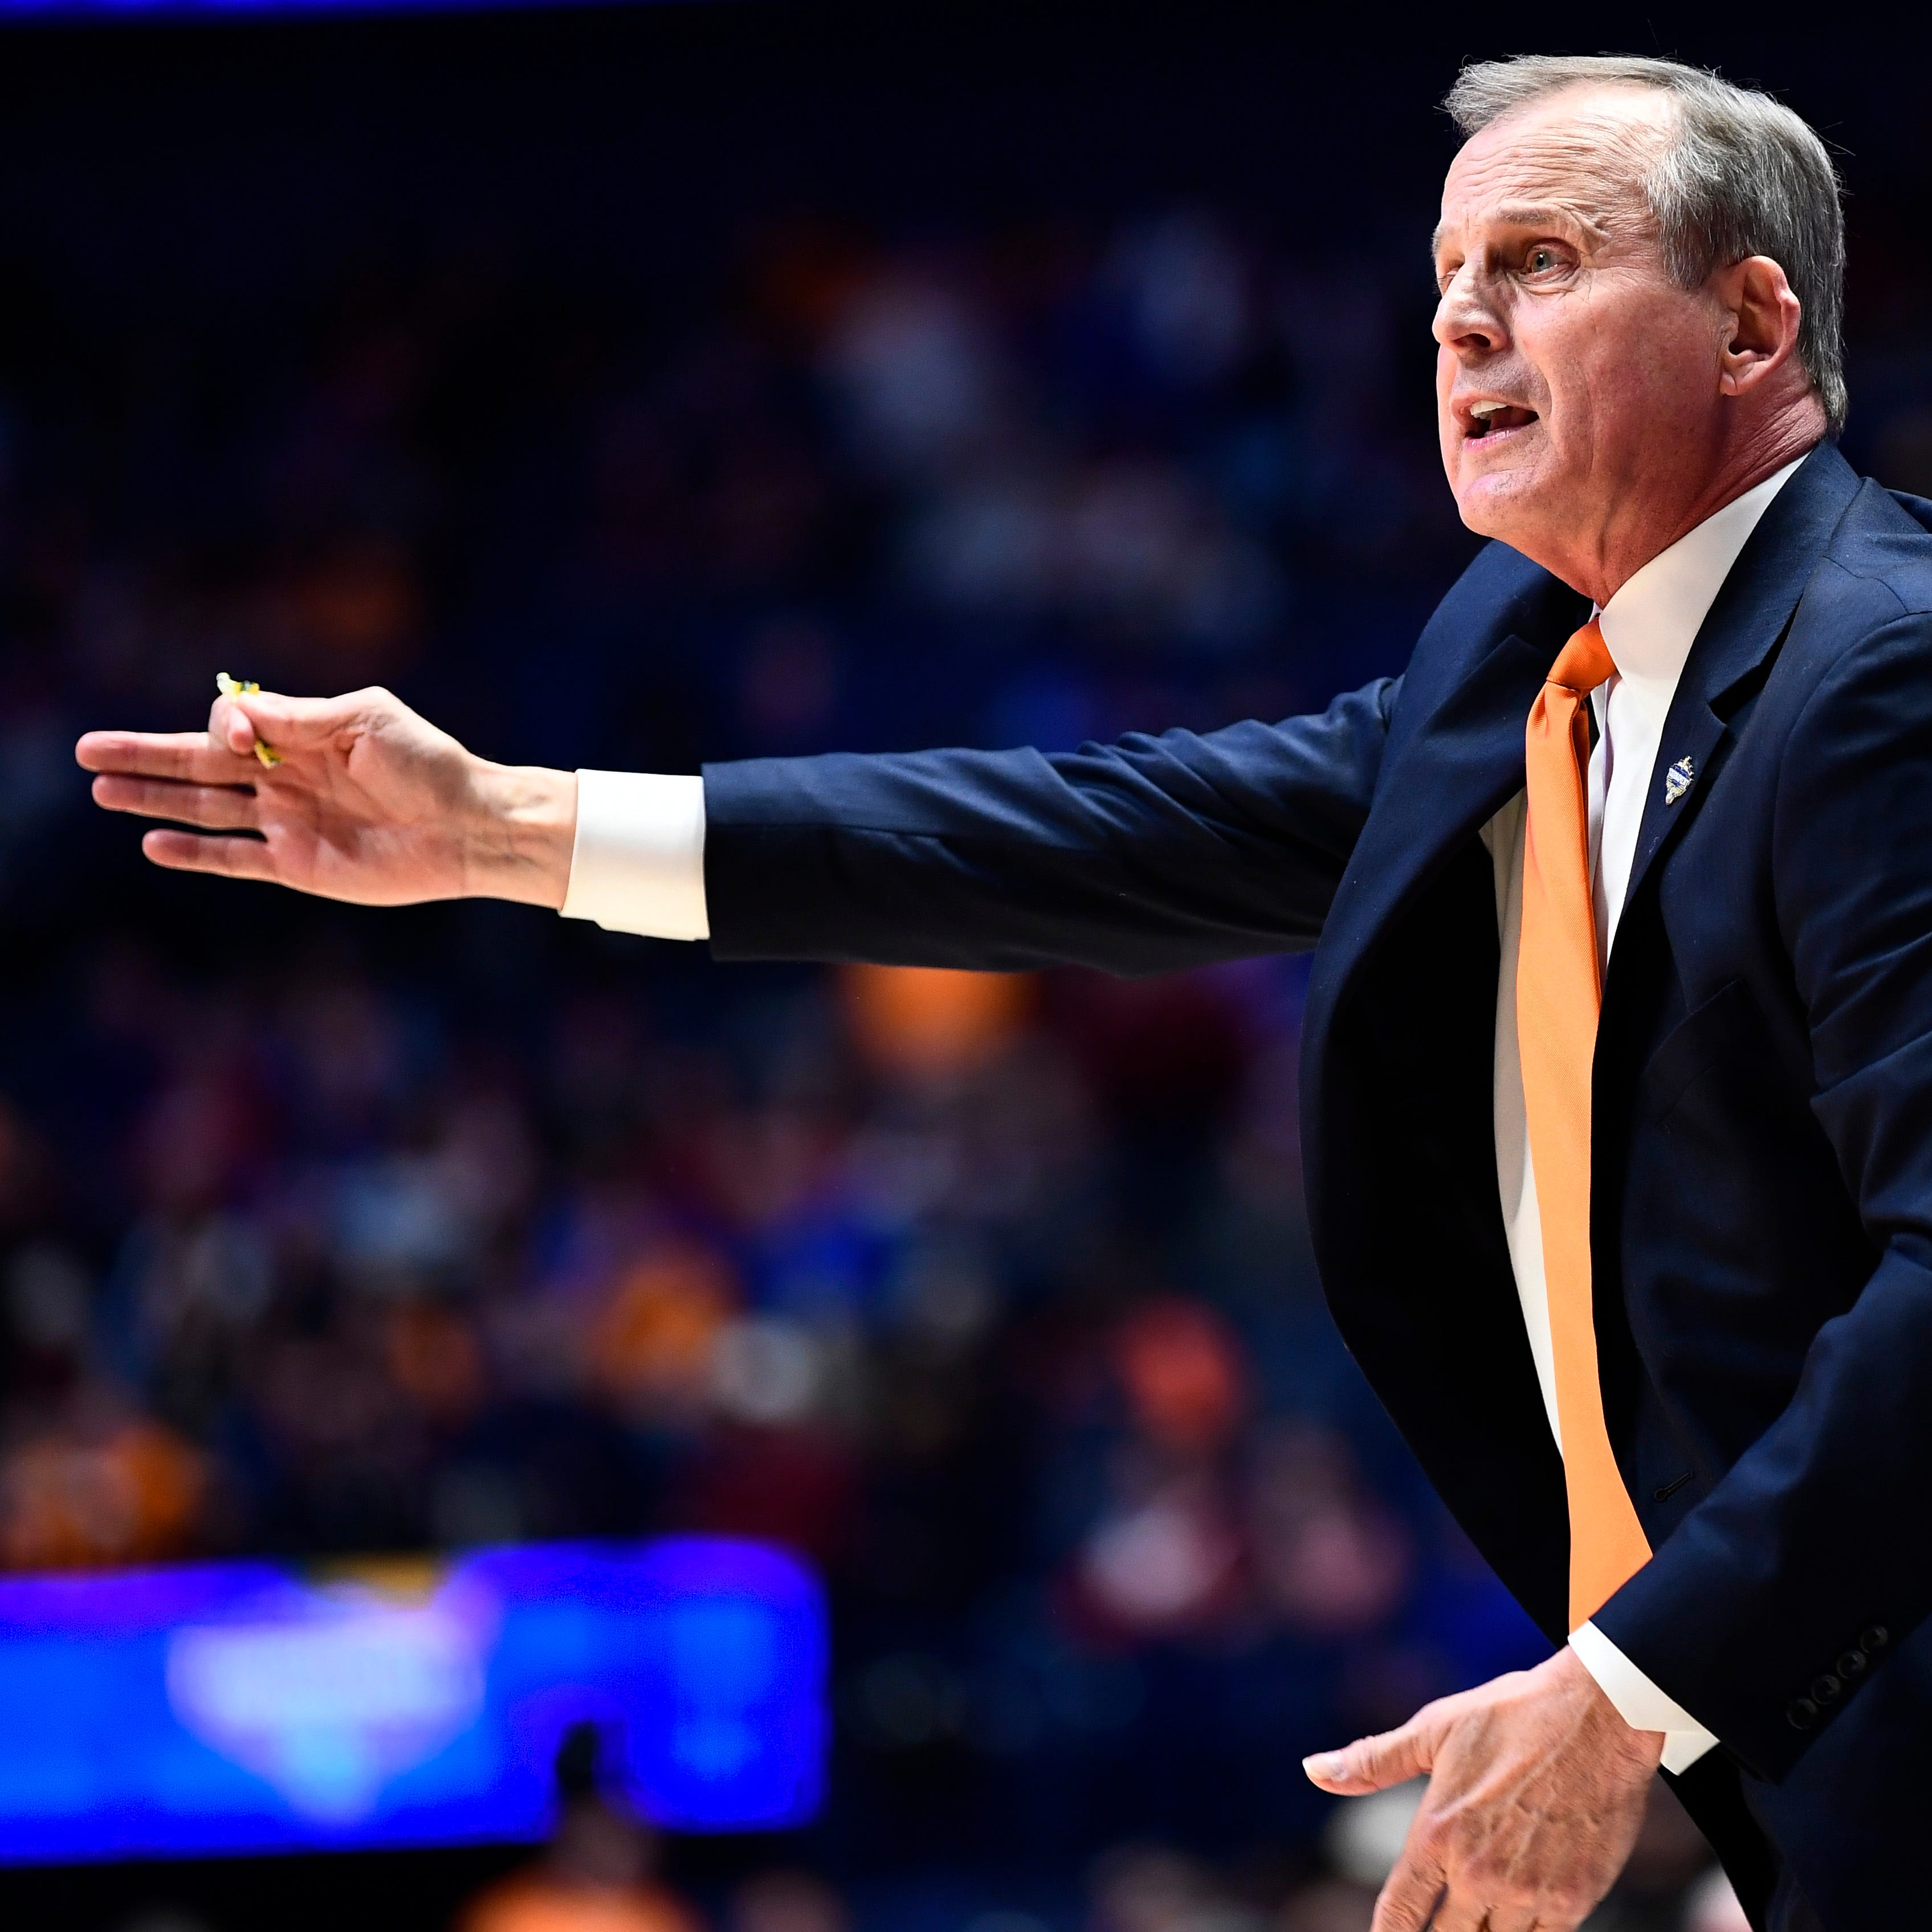 Tennessee basketball fans should celebrate Rick Barnes' return and his honesty